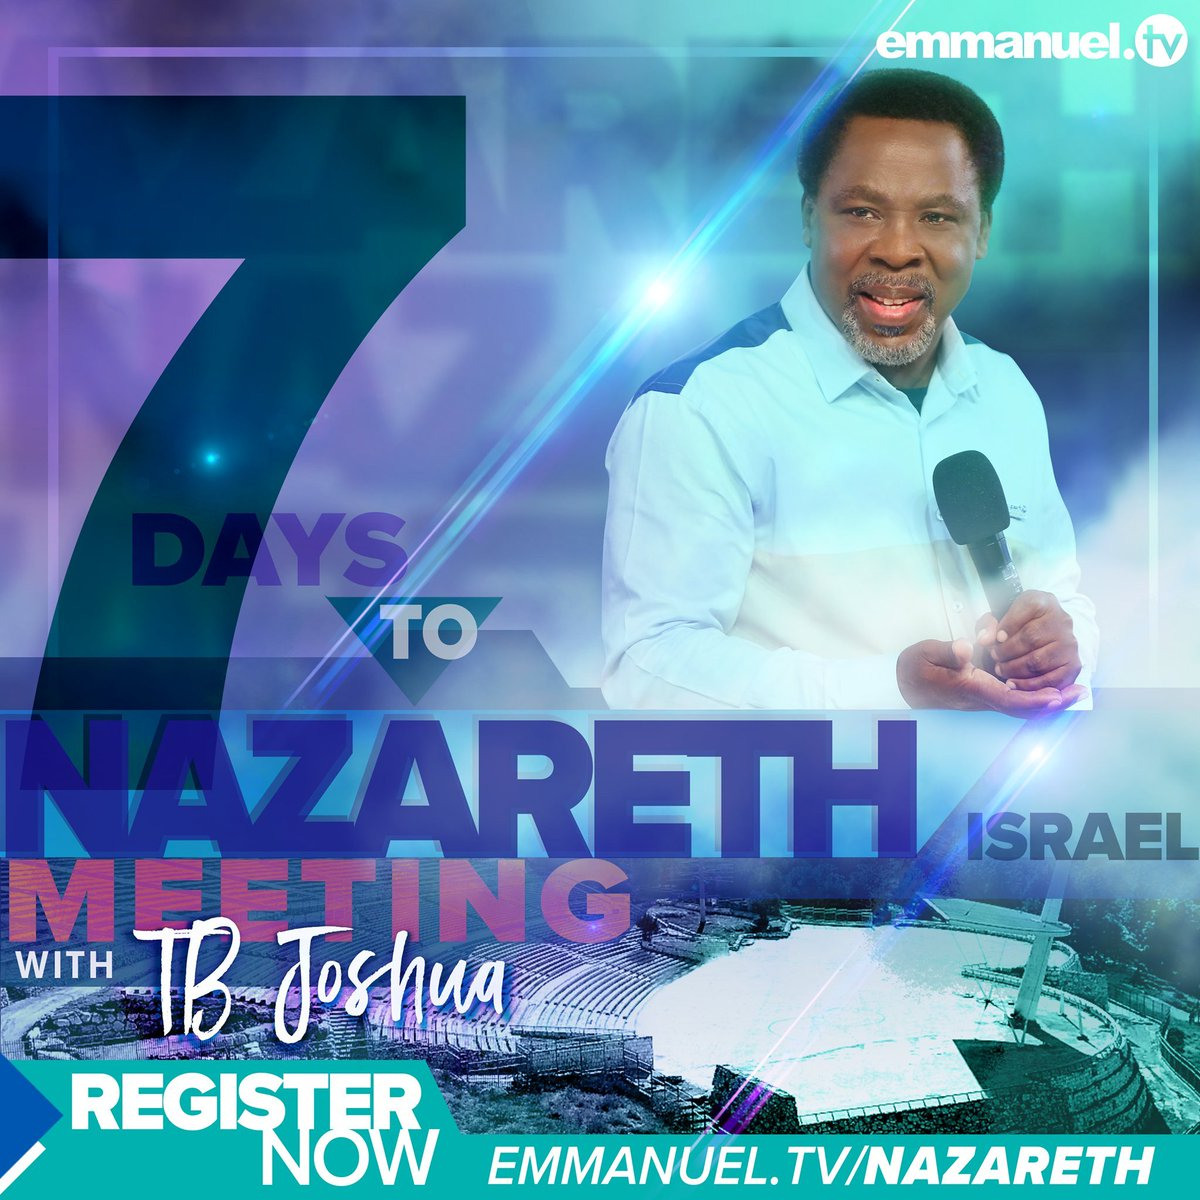 As we draw closer to the meeting with TB Joshua in Nazareth with